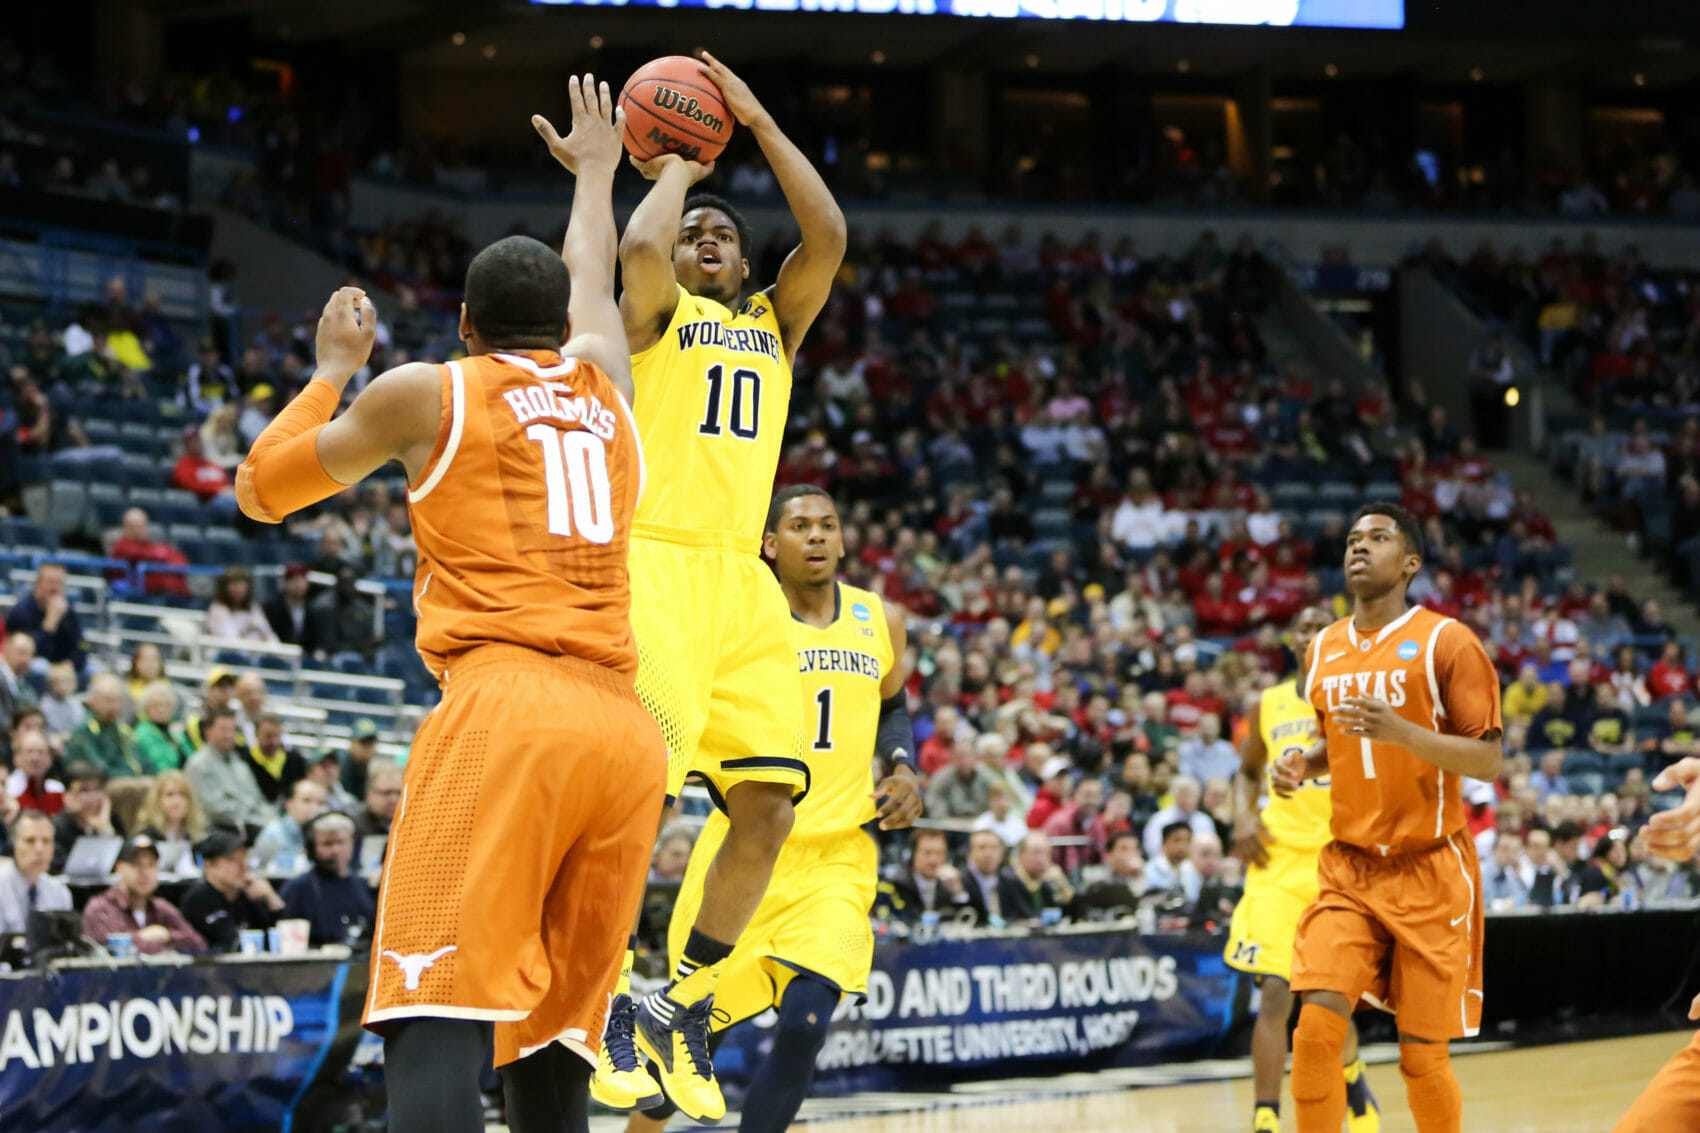 Michigan 79, Texas 65-6